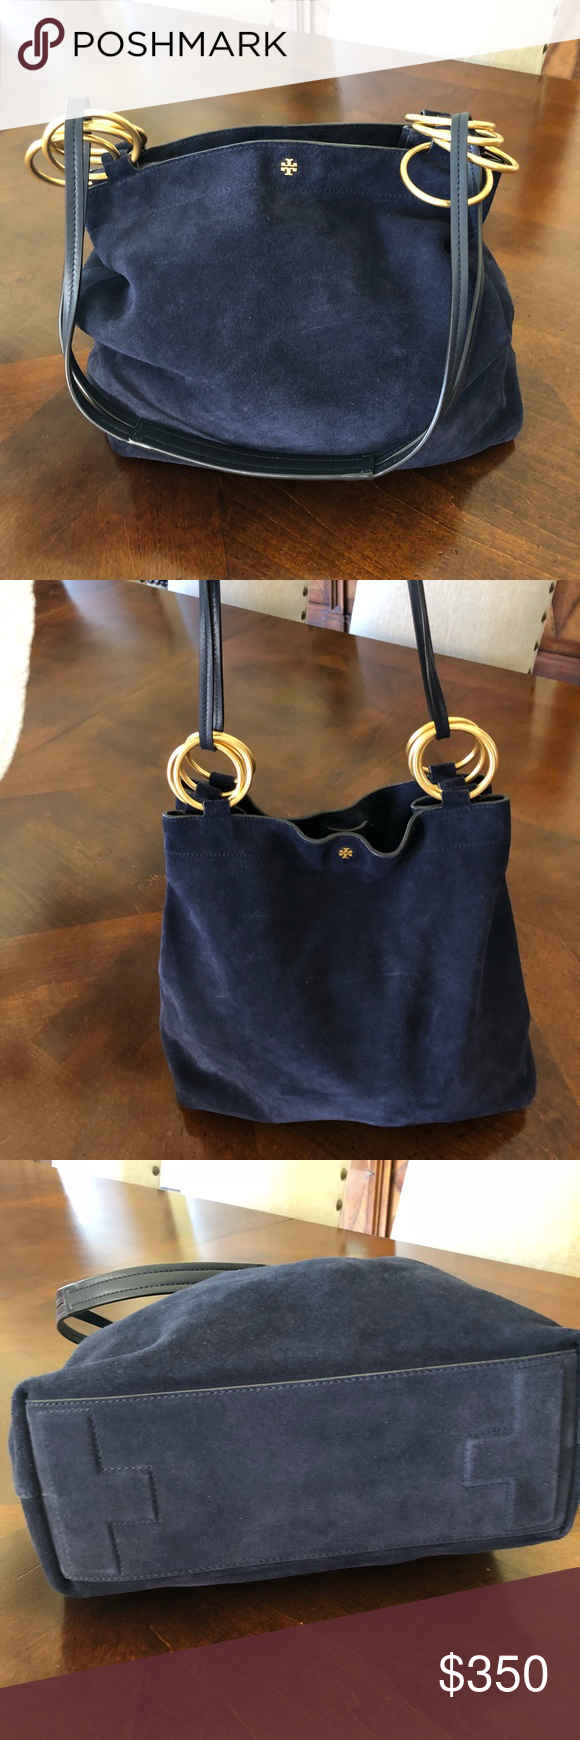 05408ad43469 Tory Burch Farrah Suede Shoulder Bag Tory Burch Navy Blue suede Farrah Used  twice Excellent Condition